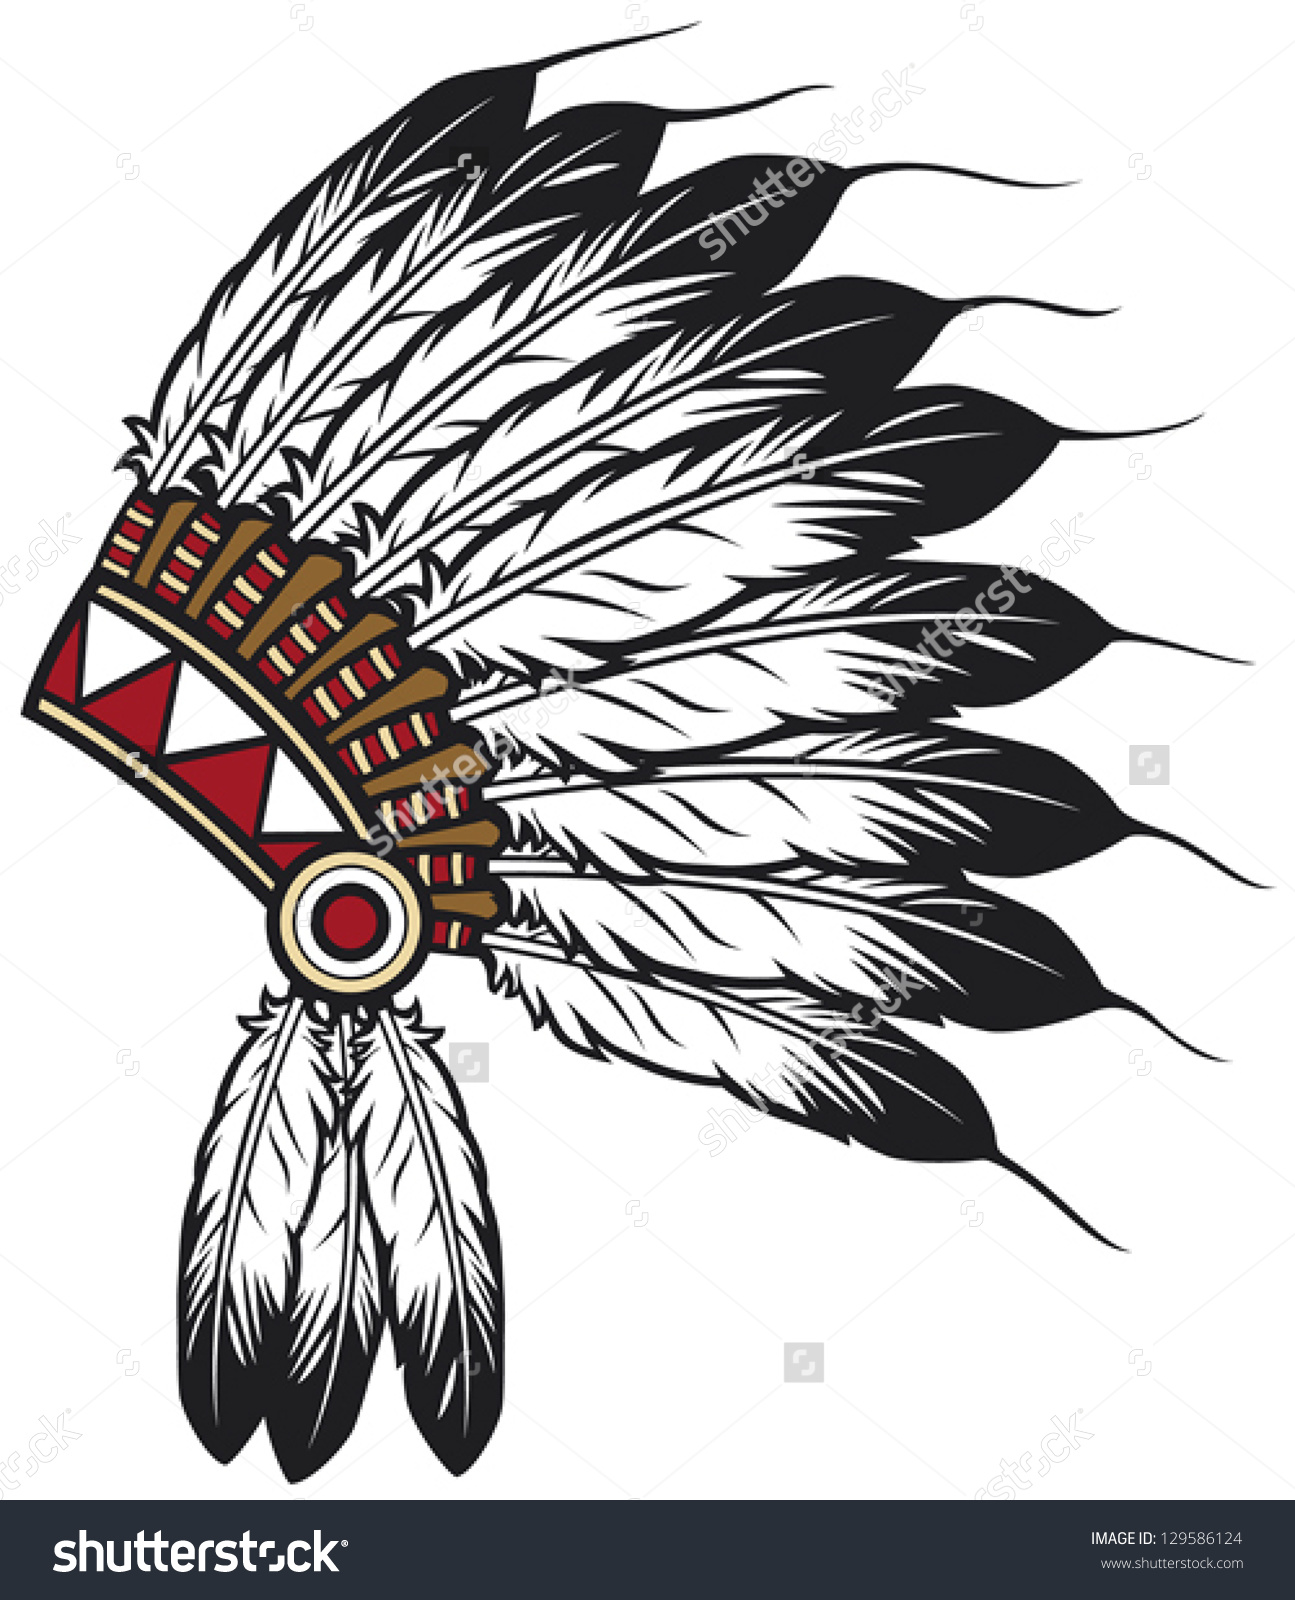 Headdress clipart first nation person Search first nations Search head